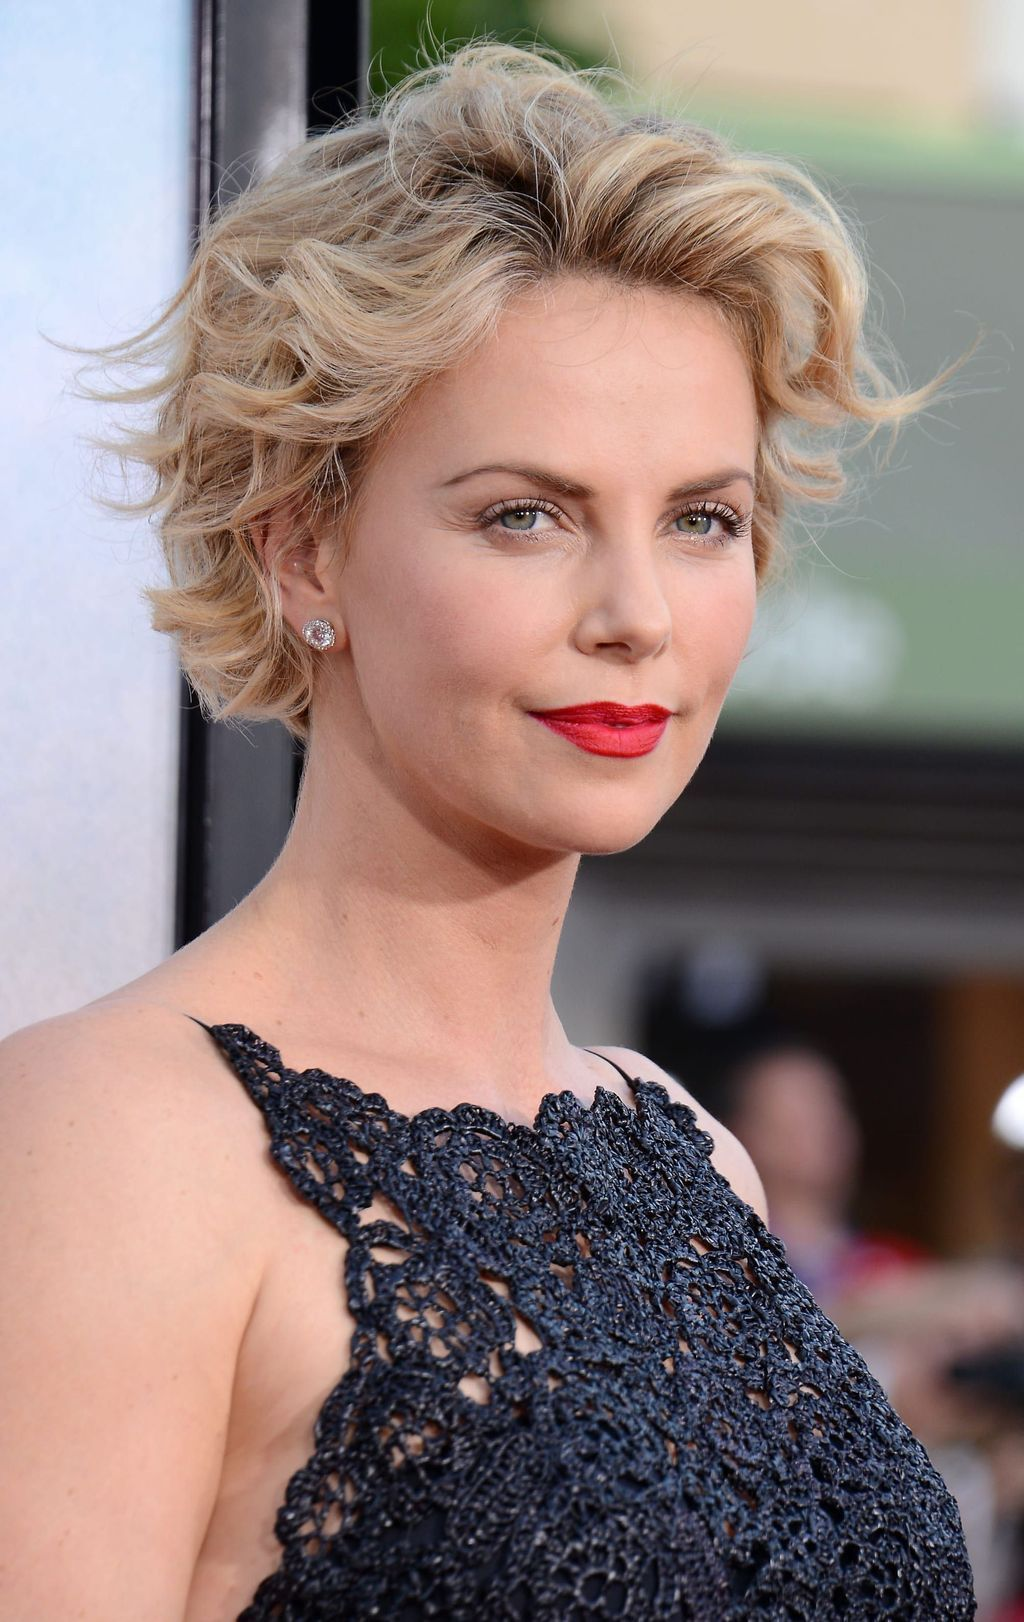 20 Most Trendy Hairstyles For Women Over 40 To Look Younger In 2020 Charlize Theron Short Hair Oval Face Hairstyles Womens Hairstyles